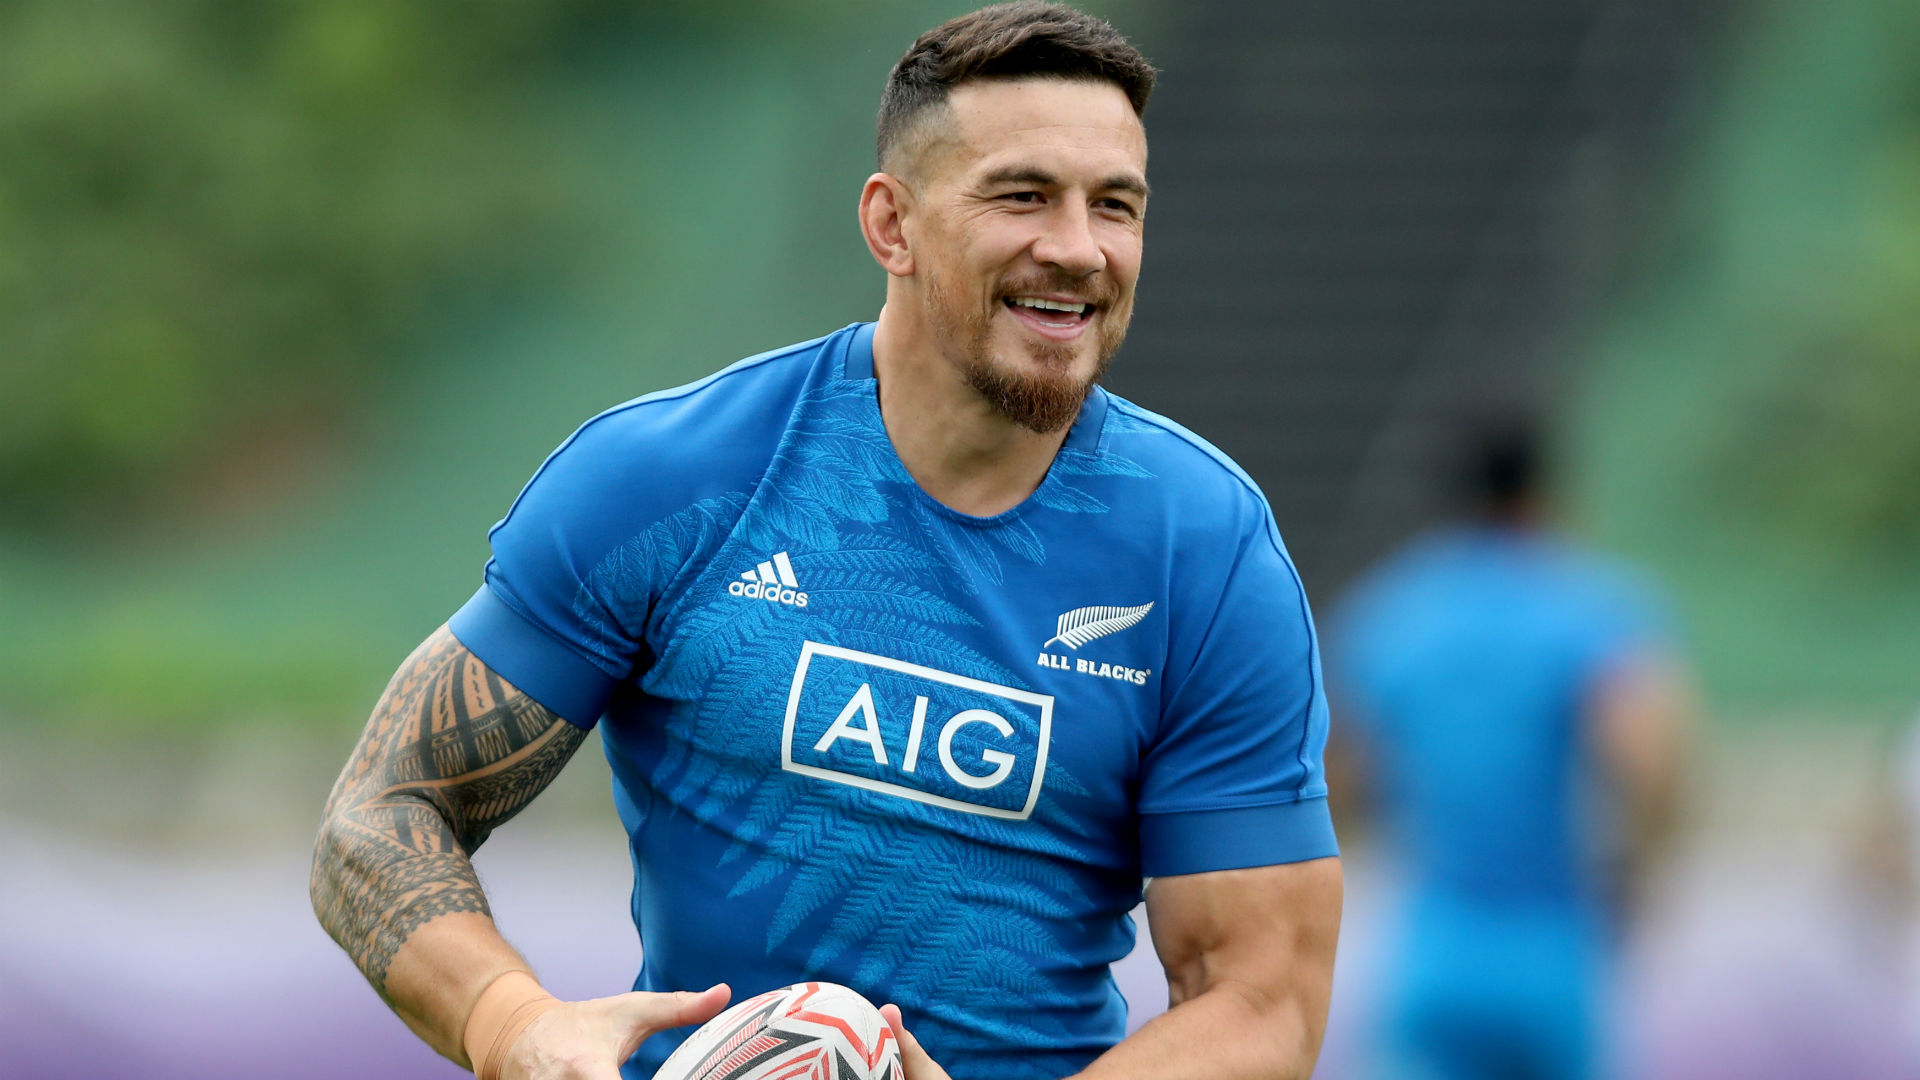 David Beckham raised the profile of Major League Soccer, but could Sonny Bill Williams do the same for Super League?